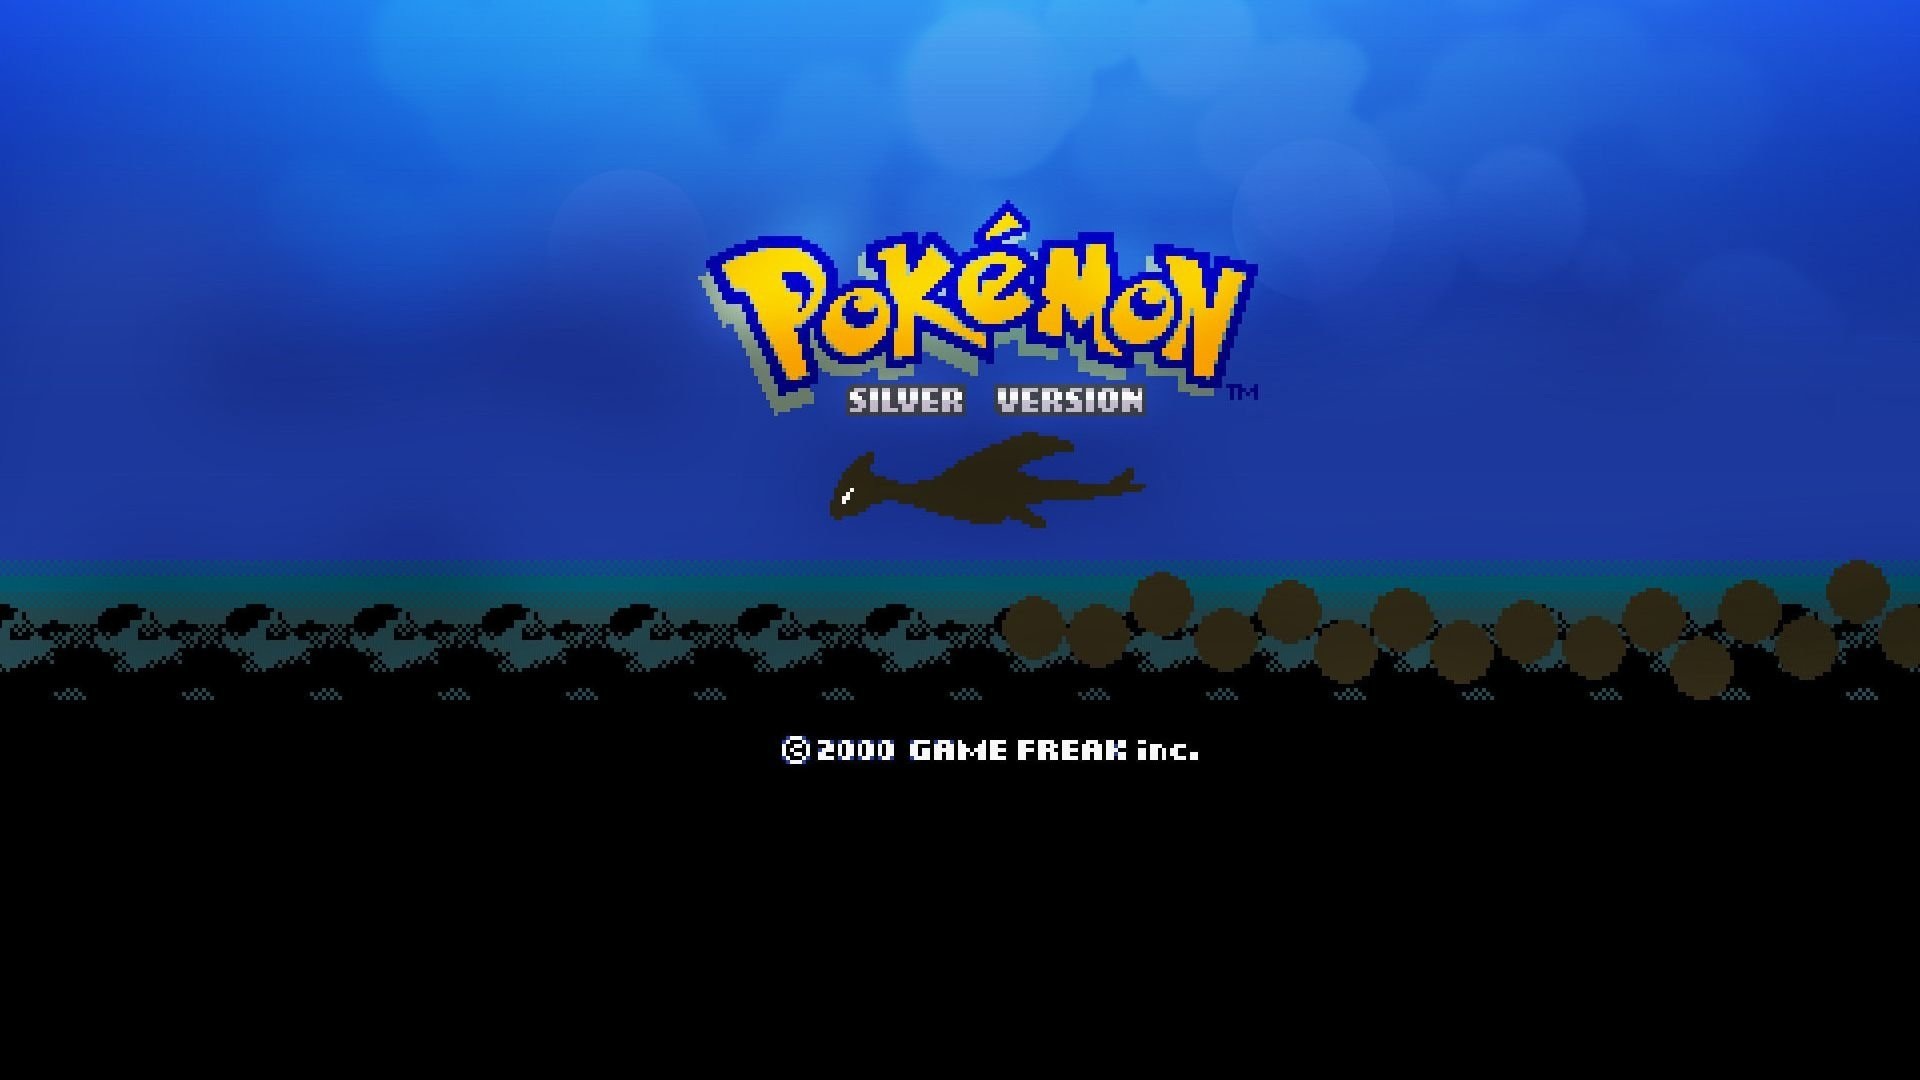 Pokemon Gold And Silver Hd Wallpaper Background Image 1920x1080 Id 648243 Wallpaper Abyss